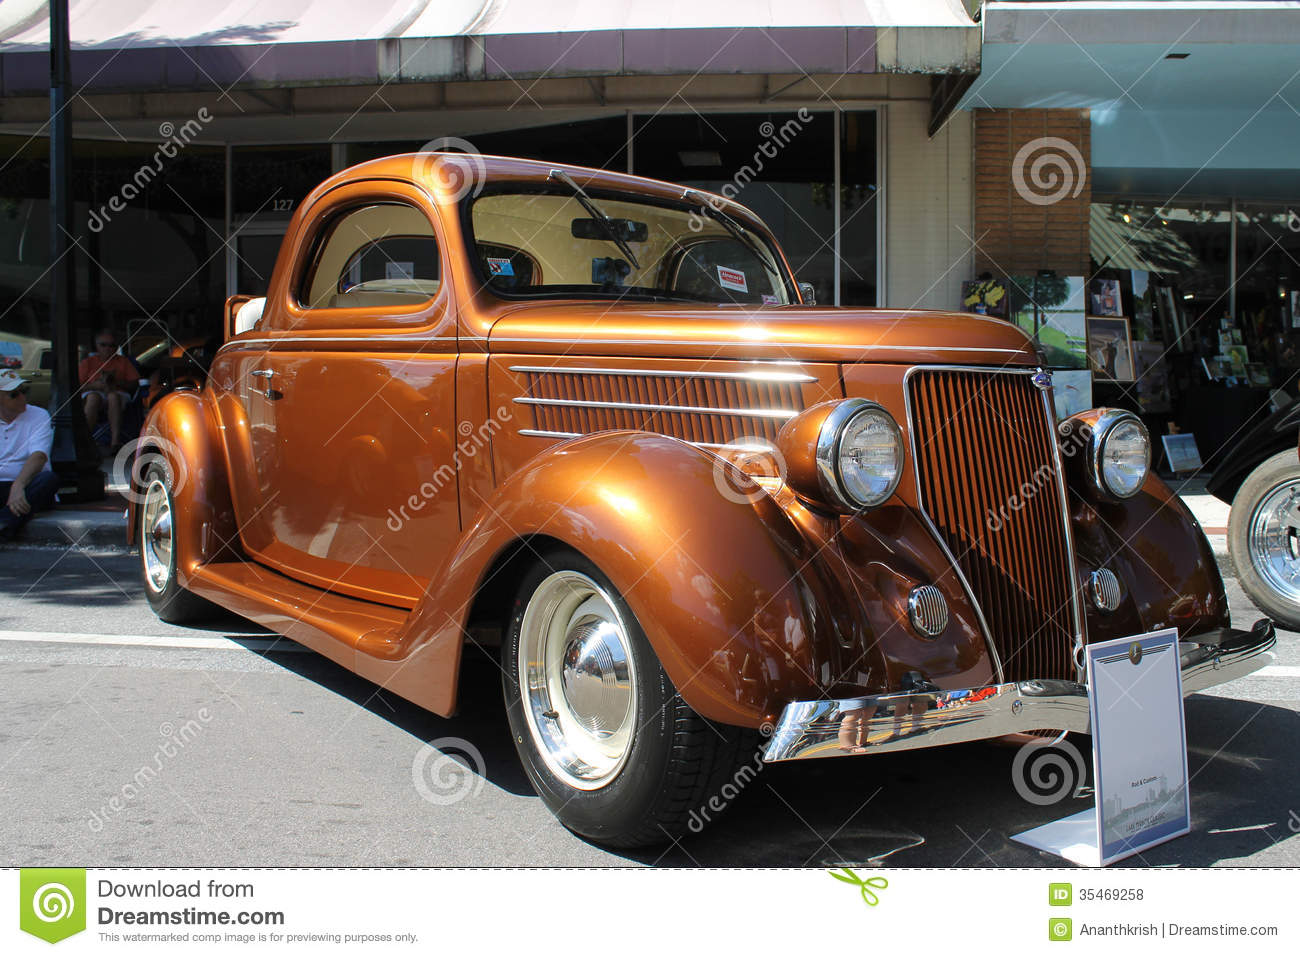 Old Ford Car At The Car Show Editorial Stock Photo - Image of show ...